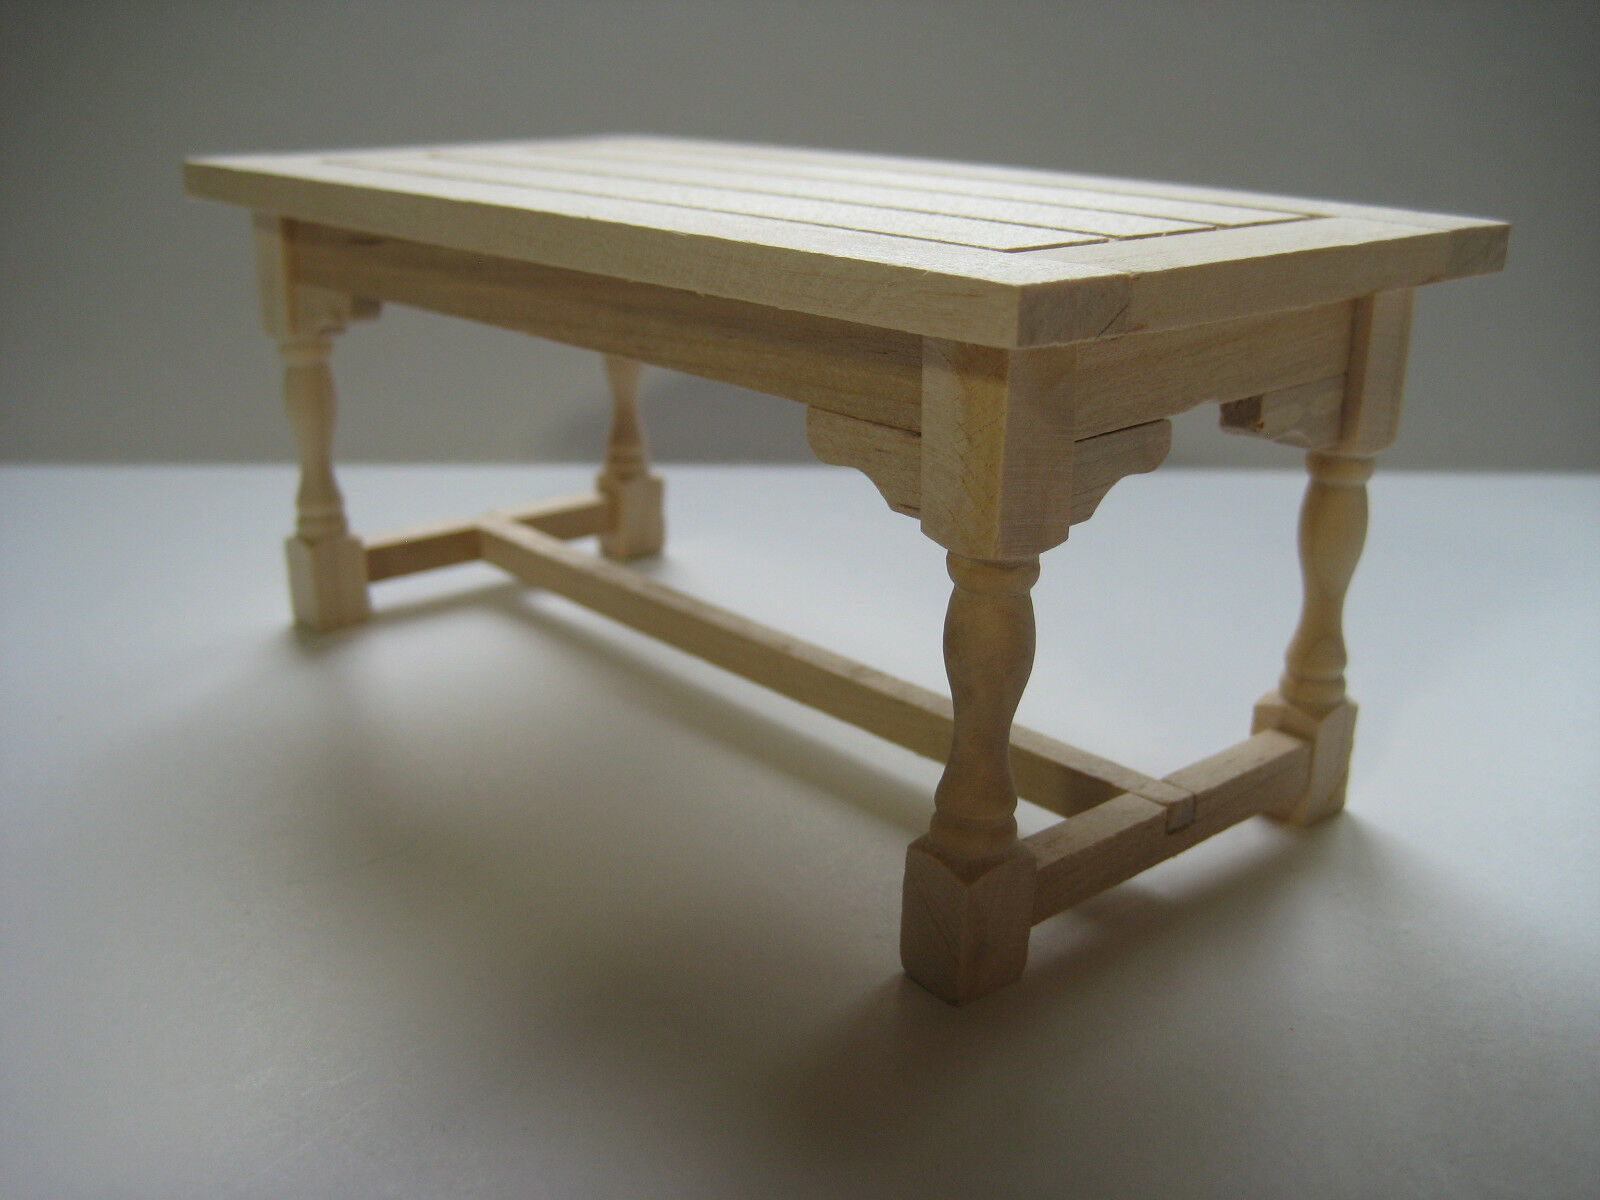 unfinished kitchen chairs shower dollhouse miniature or dining room